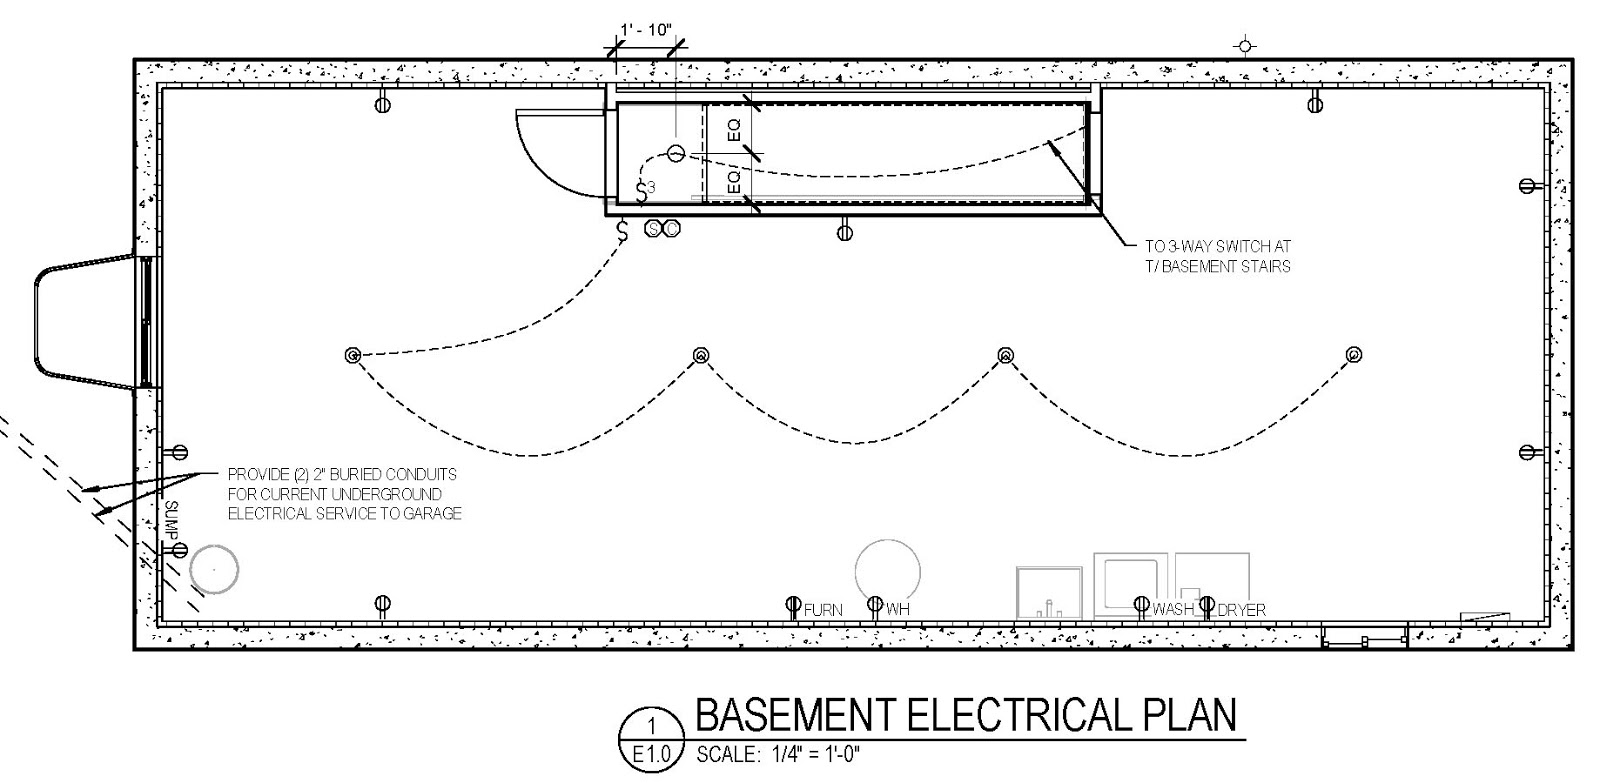 The Home 20 Blog Electric Layout 4 Way Switch Electrical Plan Below Is Revised Drawing For Project Updated To Incorporate Comments Made During Saturdays Walkthrough